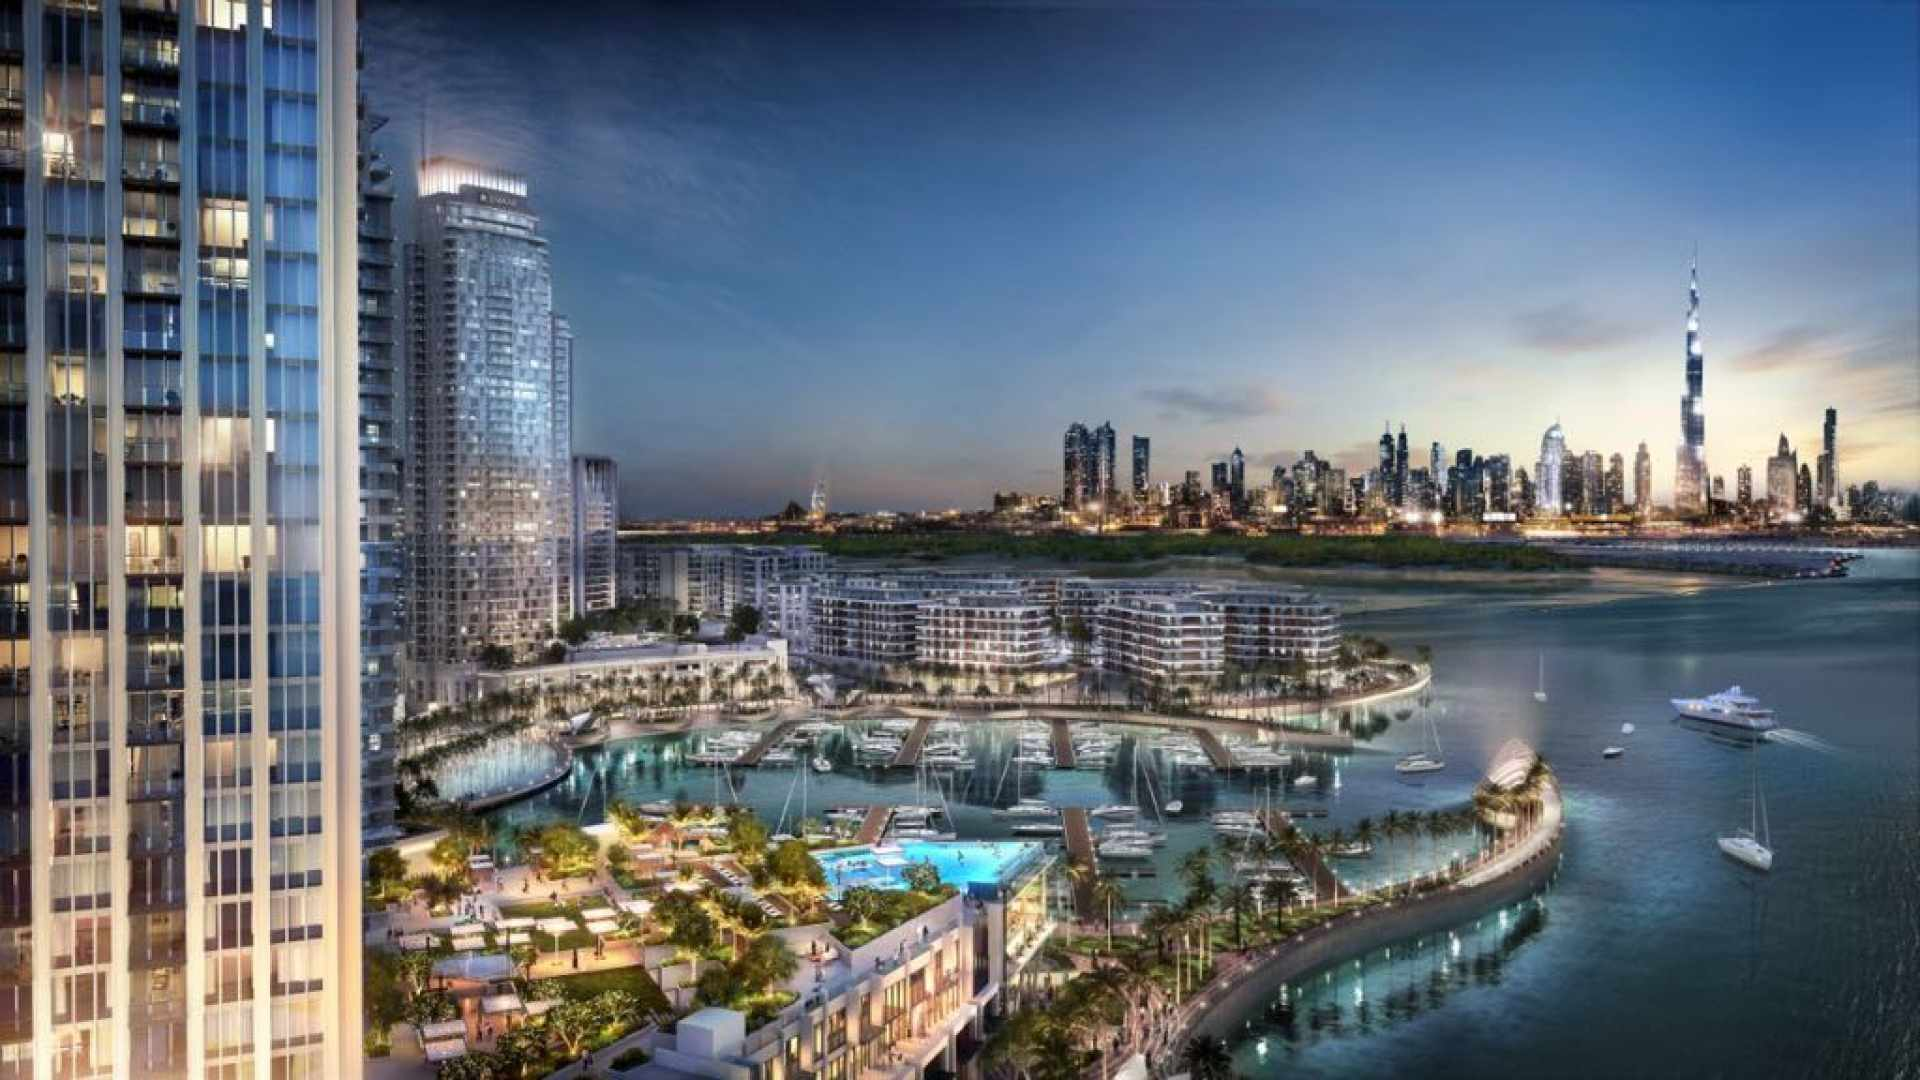 The Grand - 3 Bed Apartment for Sale in Dubai Creek ...